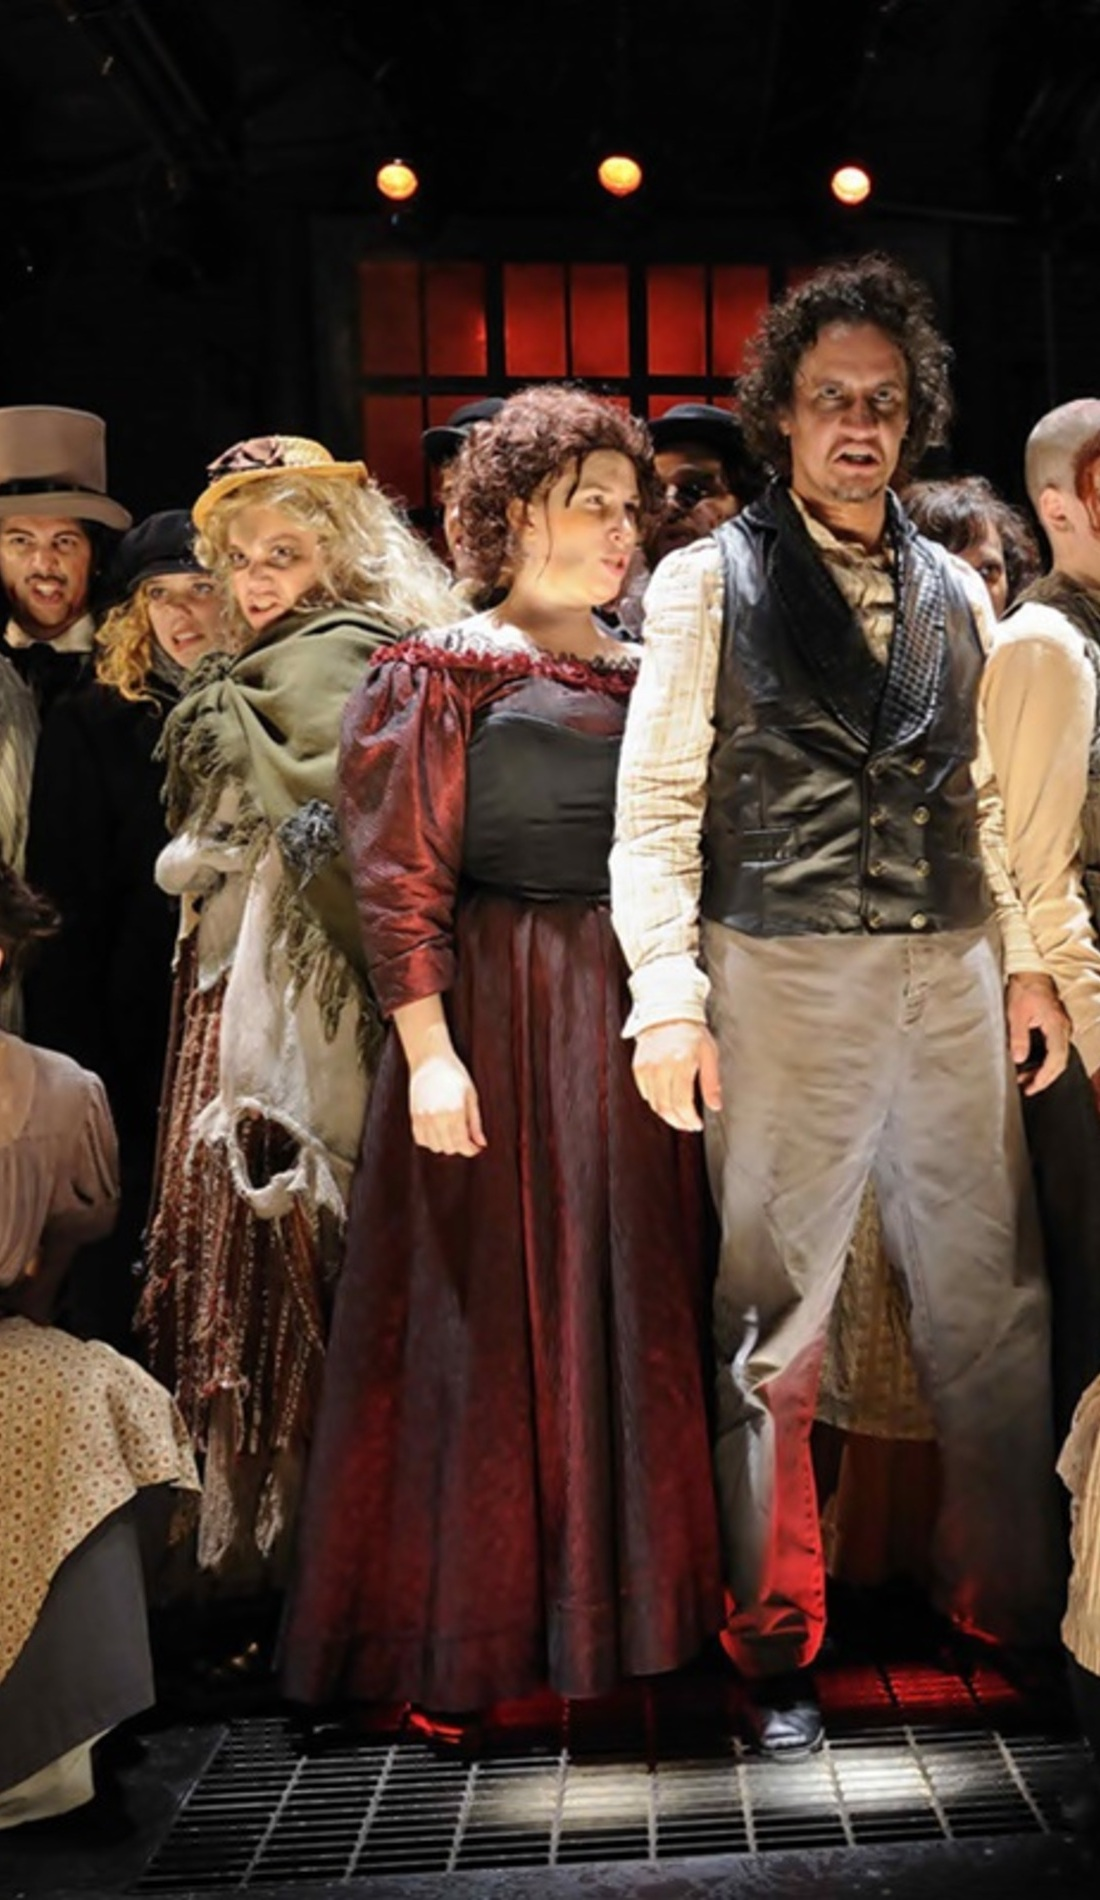 A Sweeney Todd live event